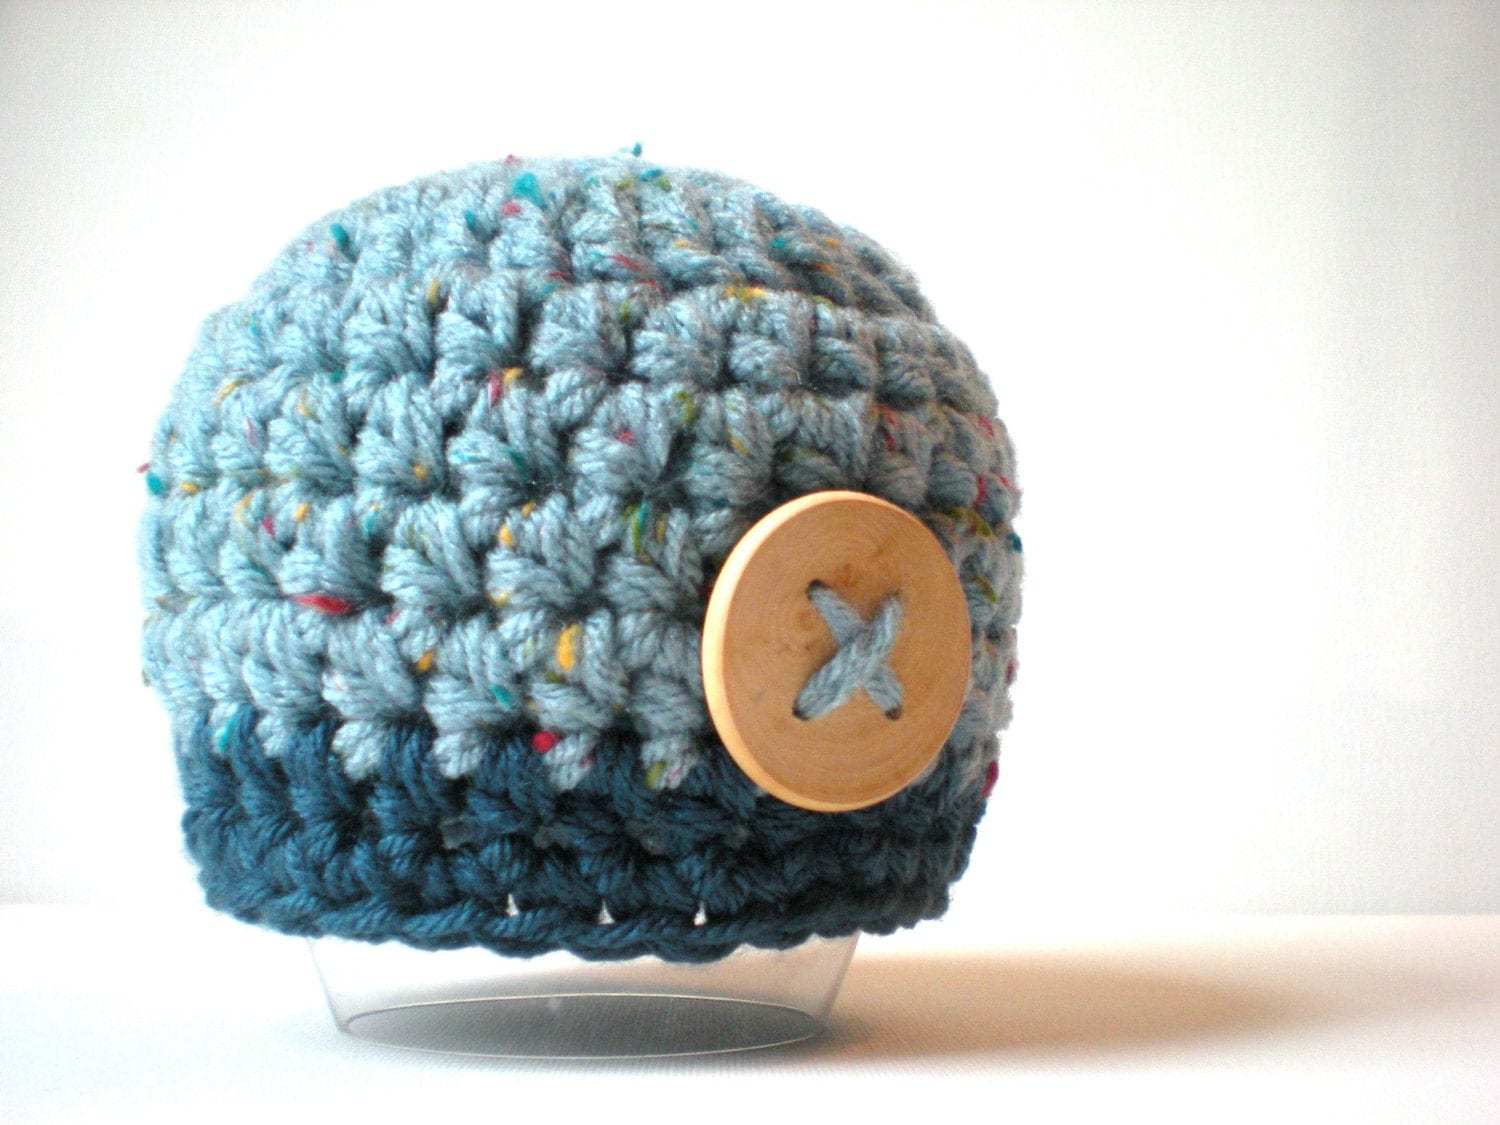 READY TO SHIP- baby boy button beanie, blue tweed and dark teal, chunky hat, size 0-3m, with wooden button accent - swellamy